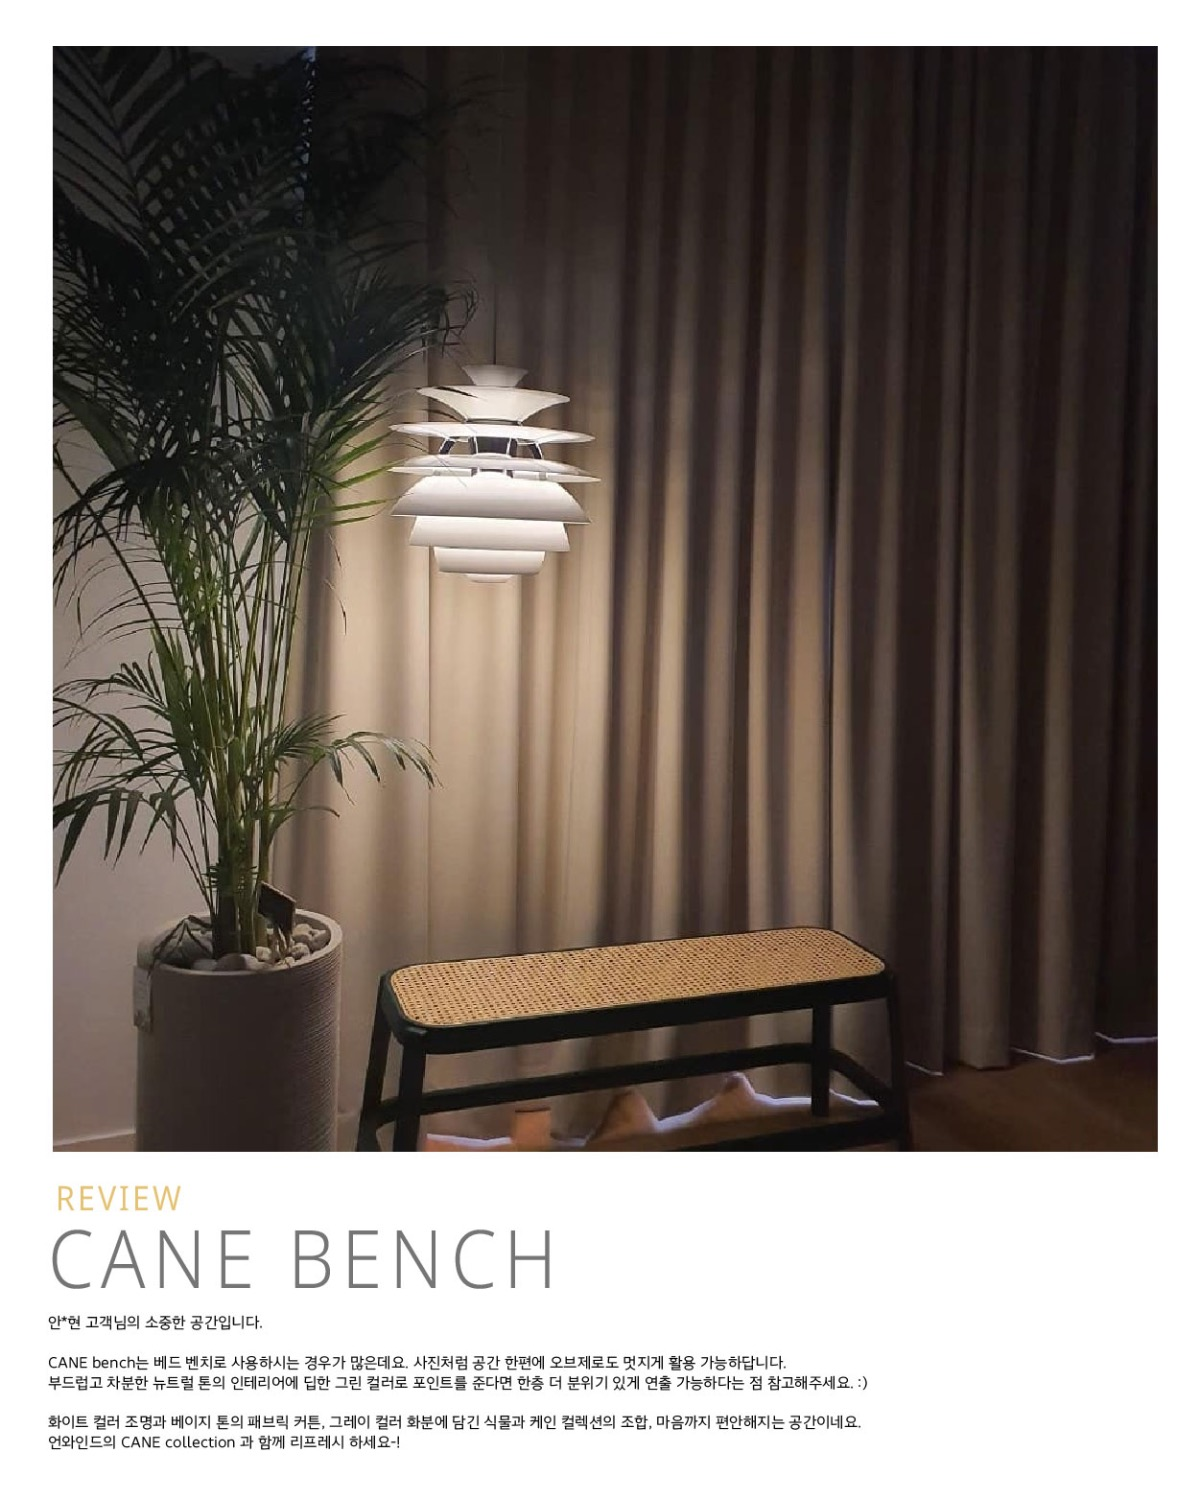 CANE bench, green